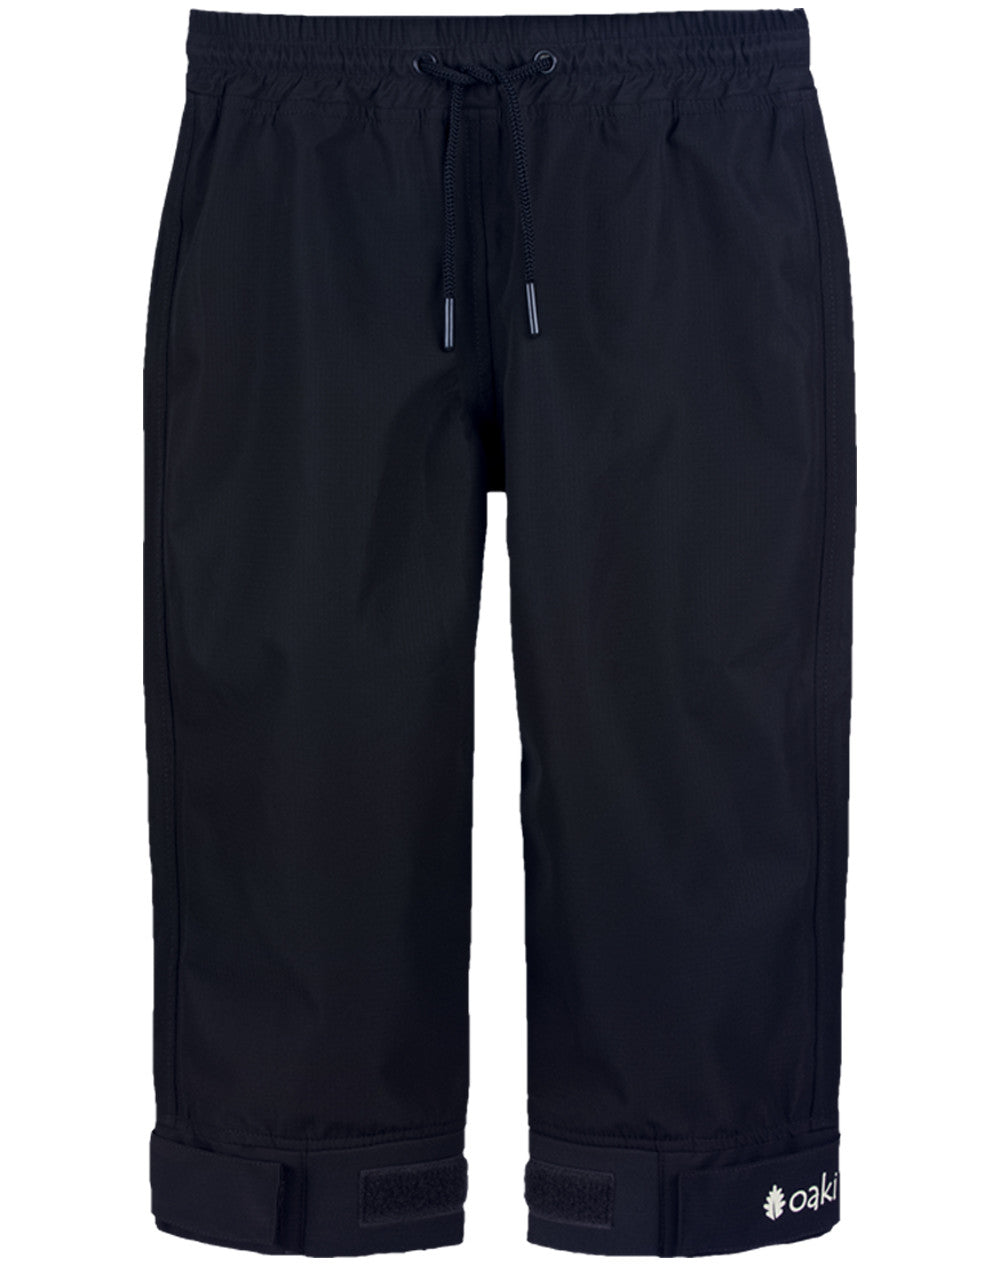 Trail/Rain Pants, Black